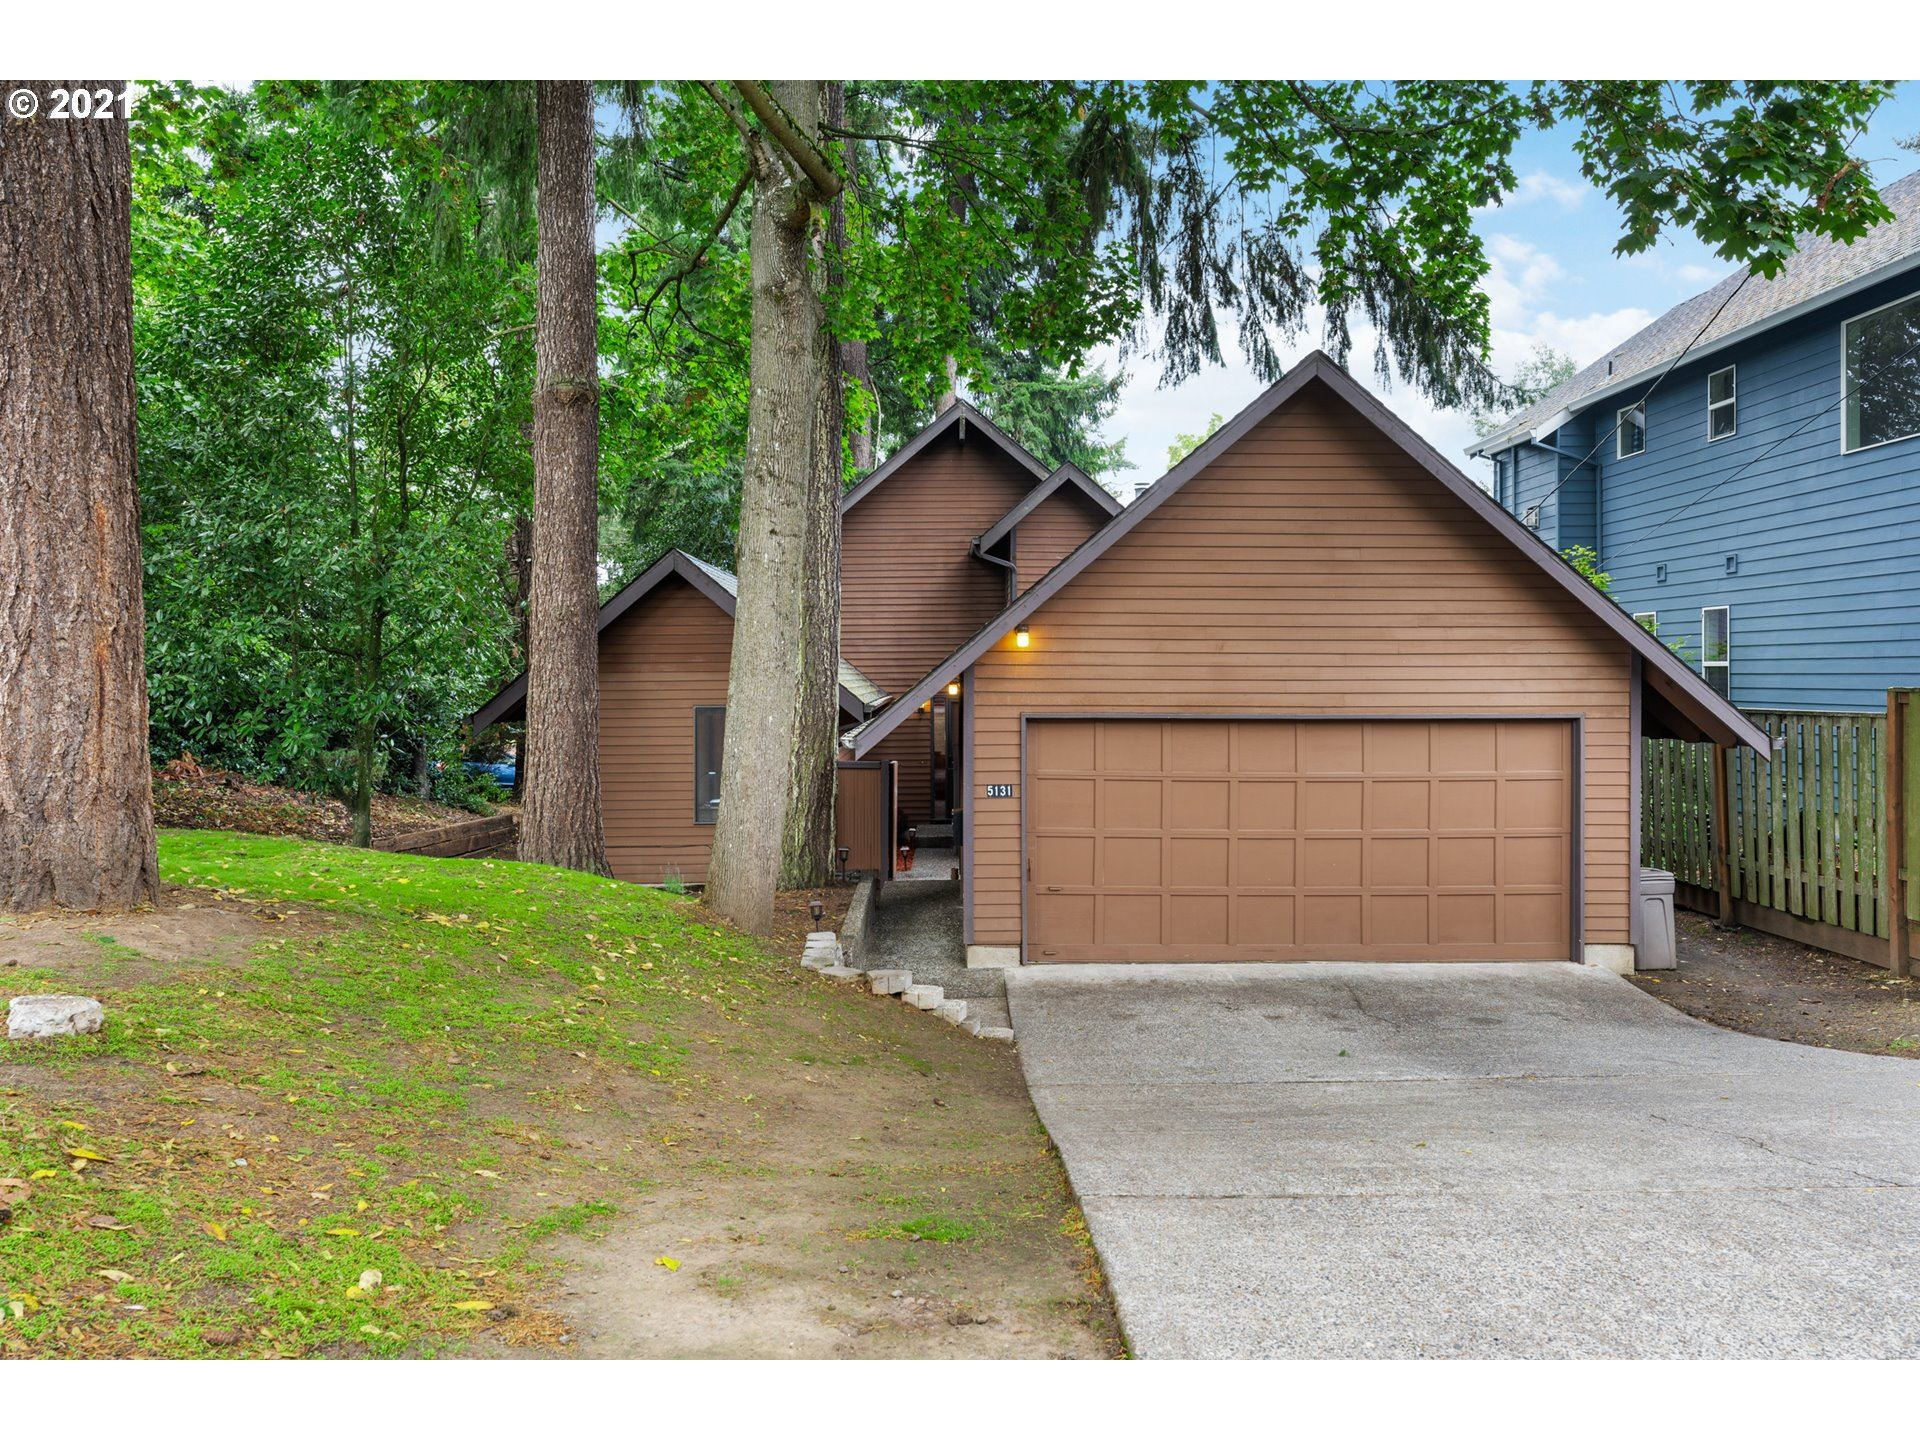 5131 SE 40TH AVE, Portland, OR 97202 - MLS#: 21366930